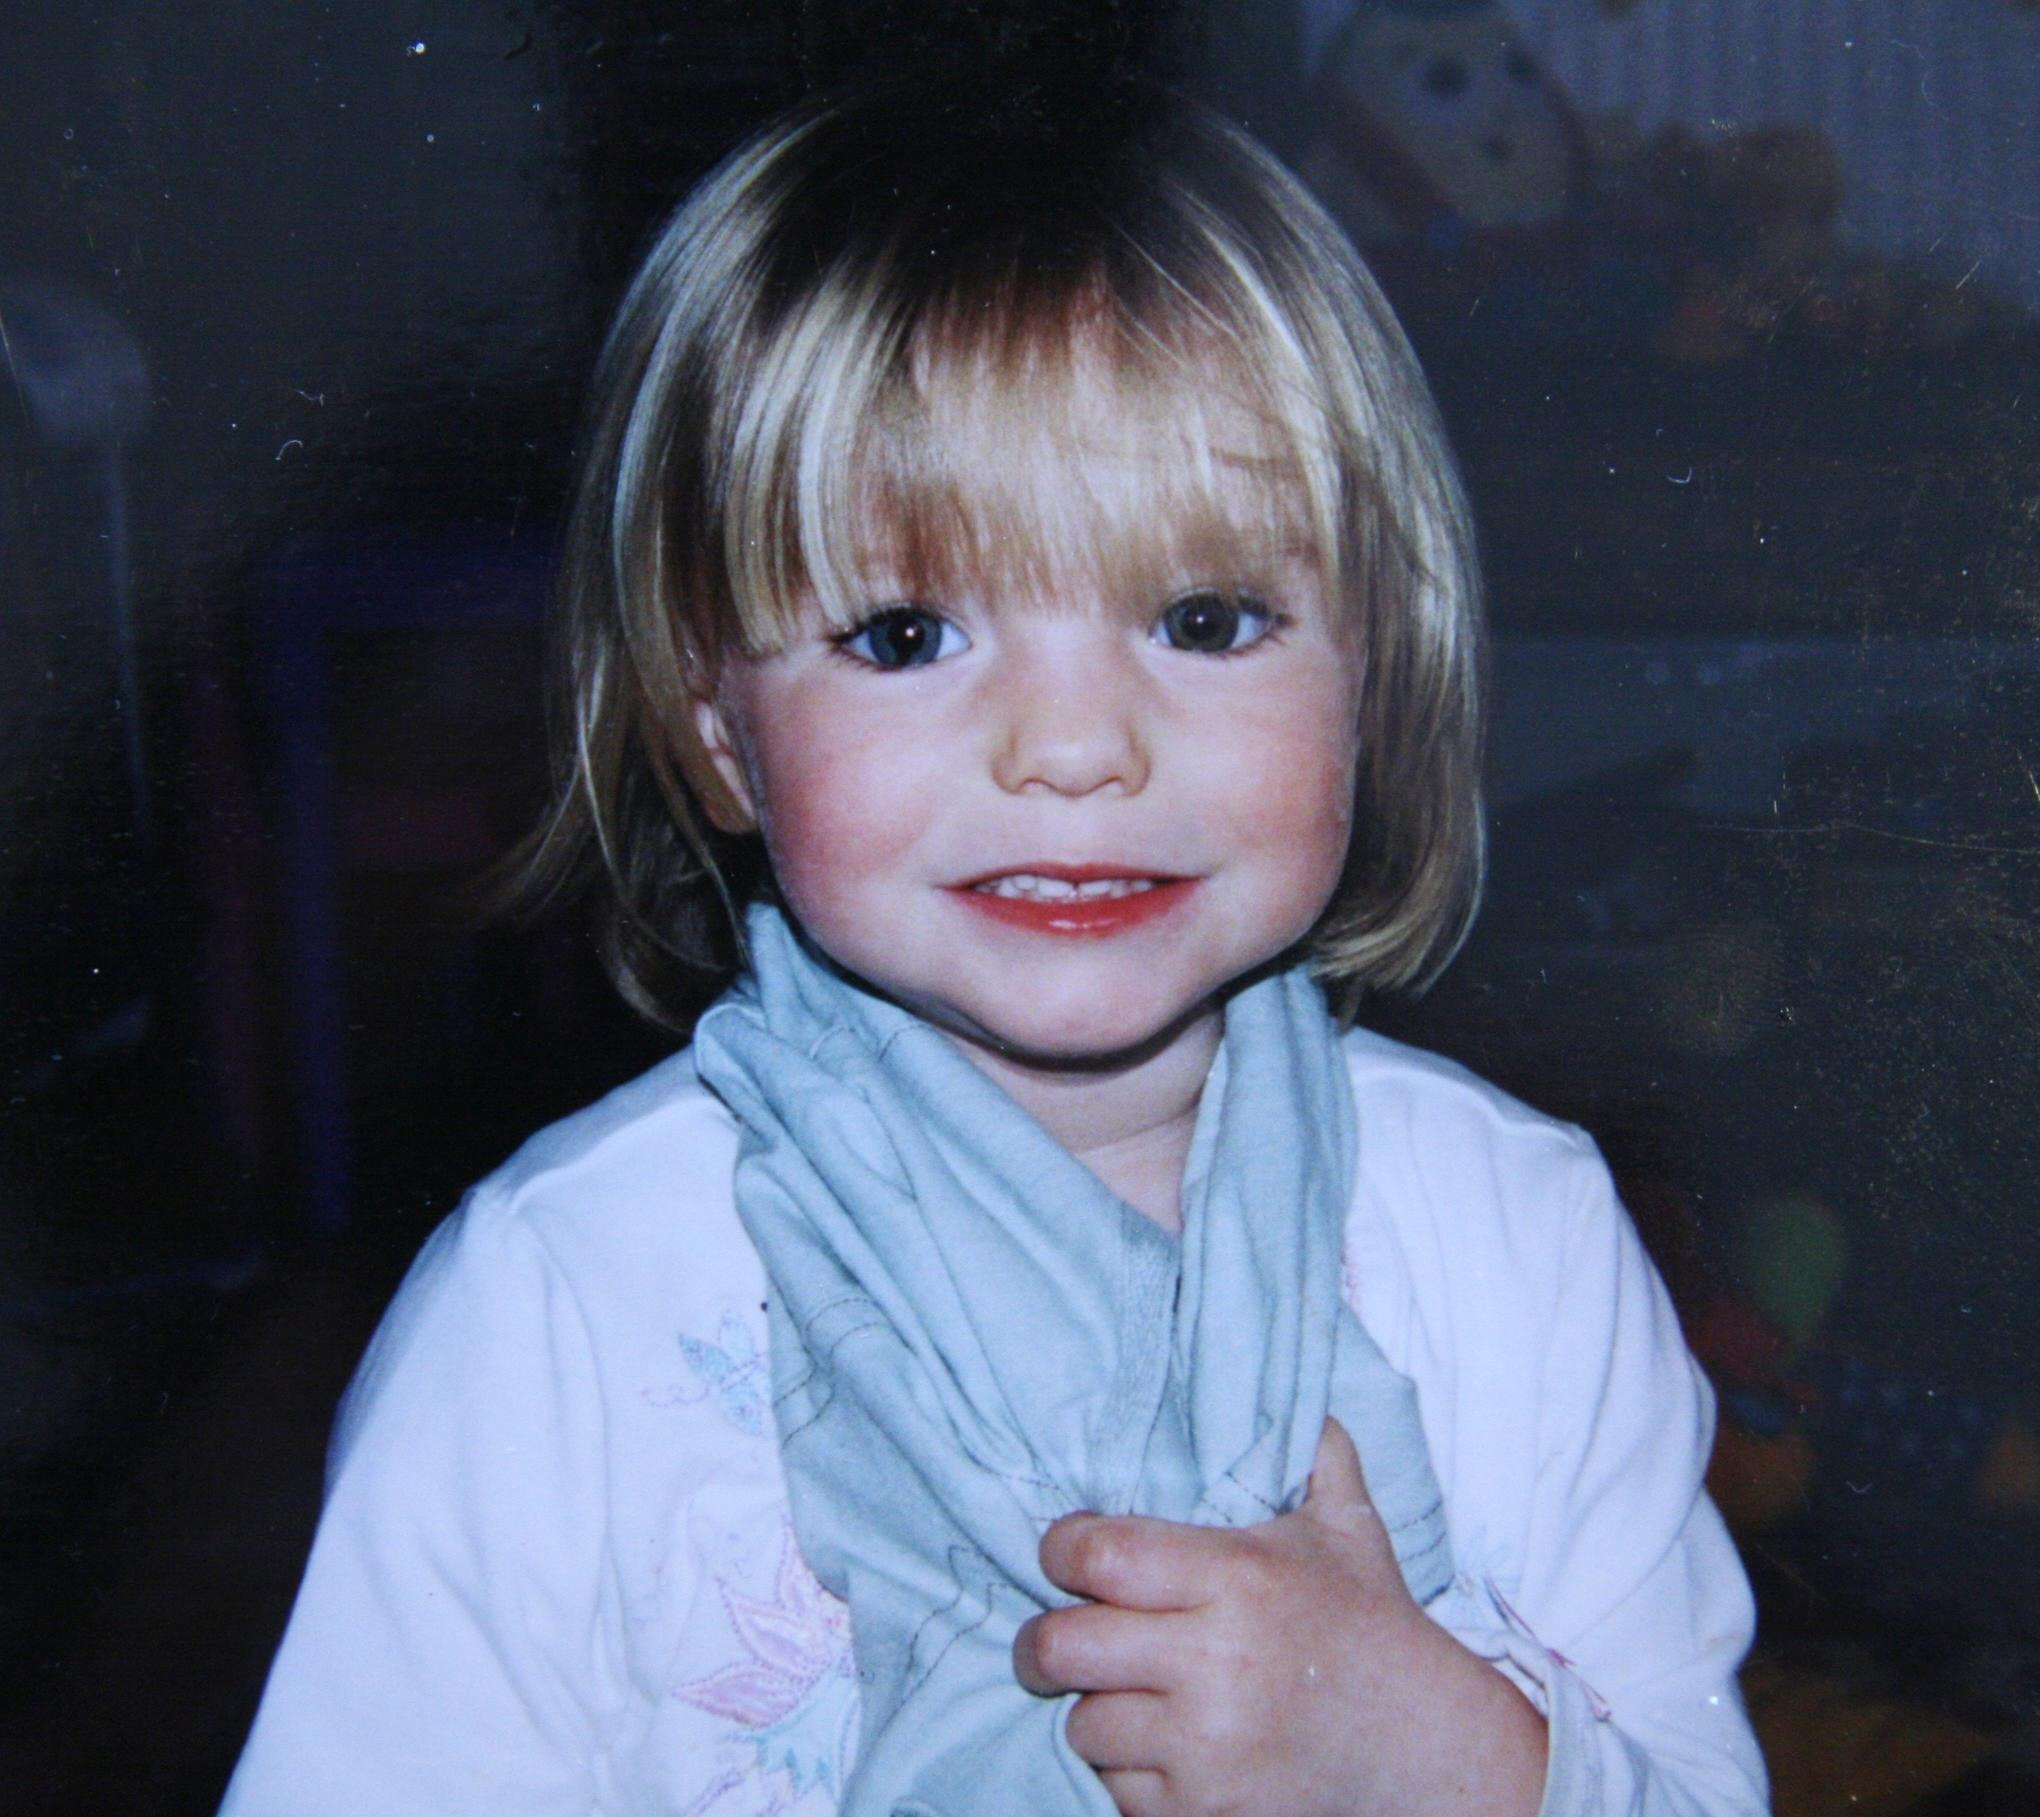 Police Searching For Madeleine McCann End Forensic Investigation To Save Money mccann2